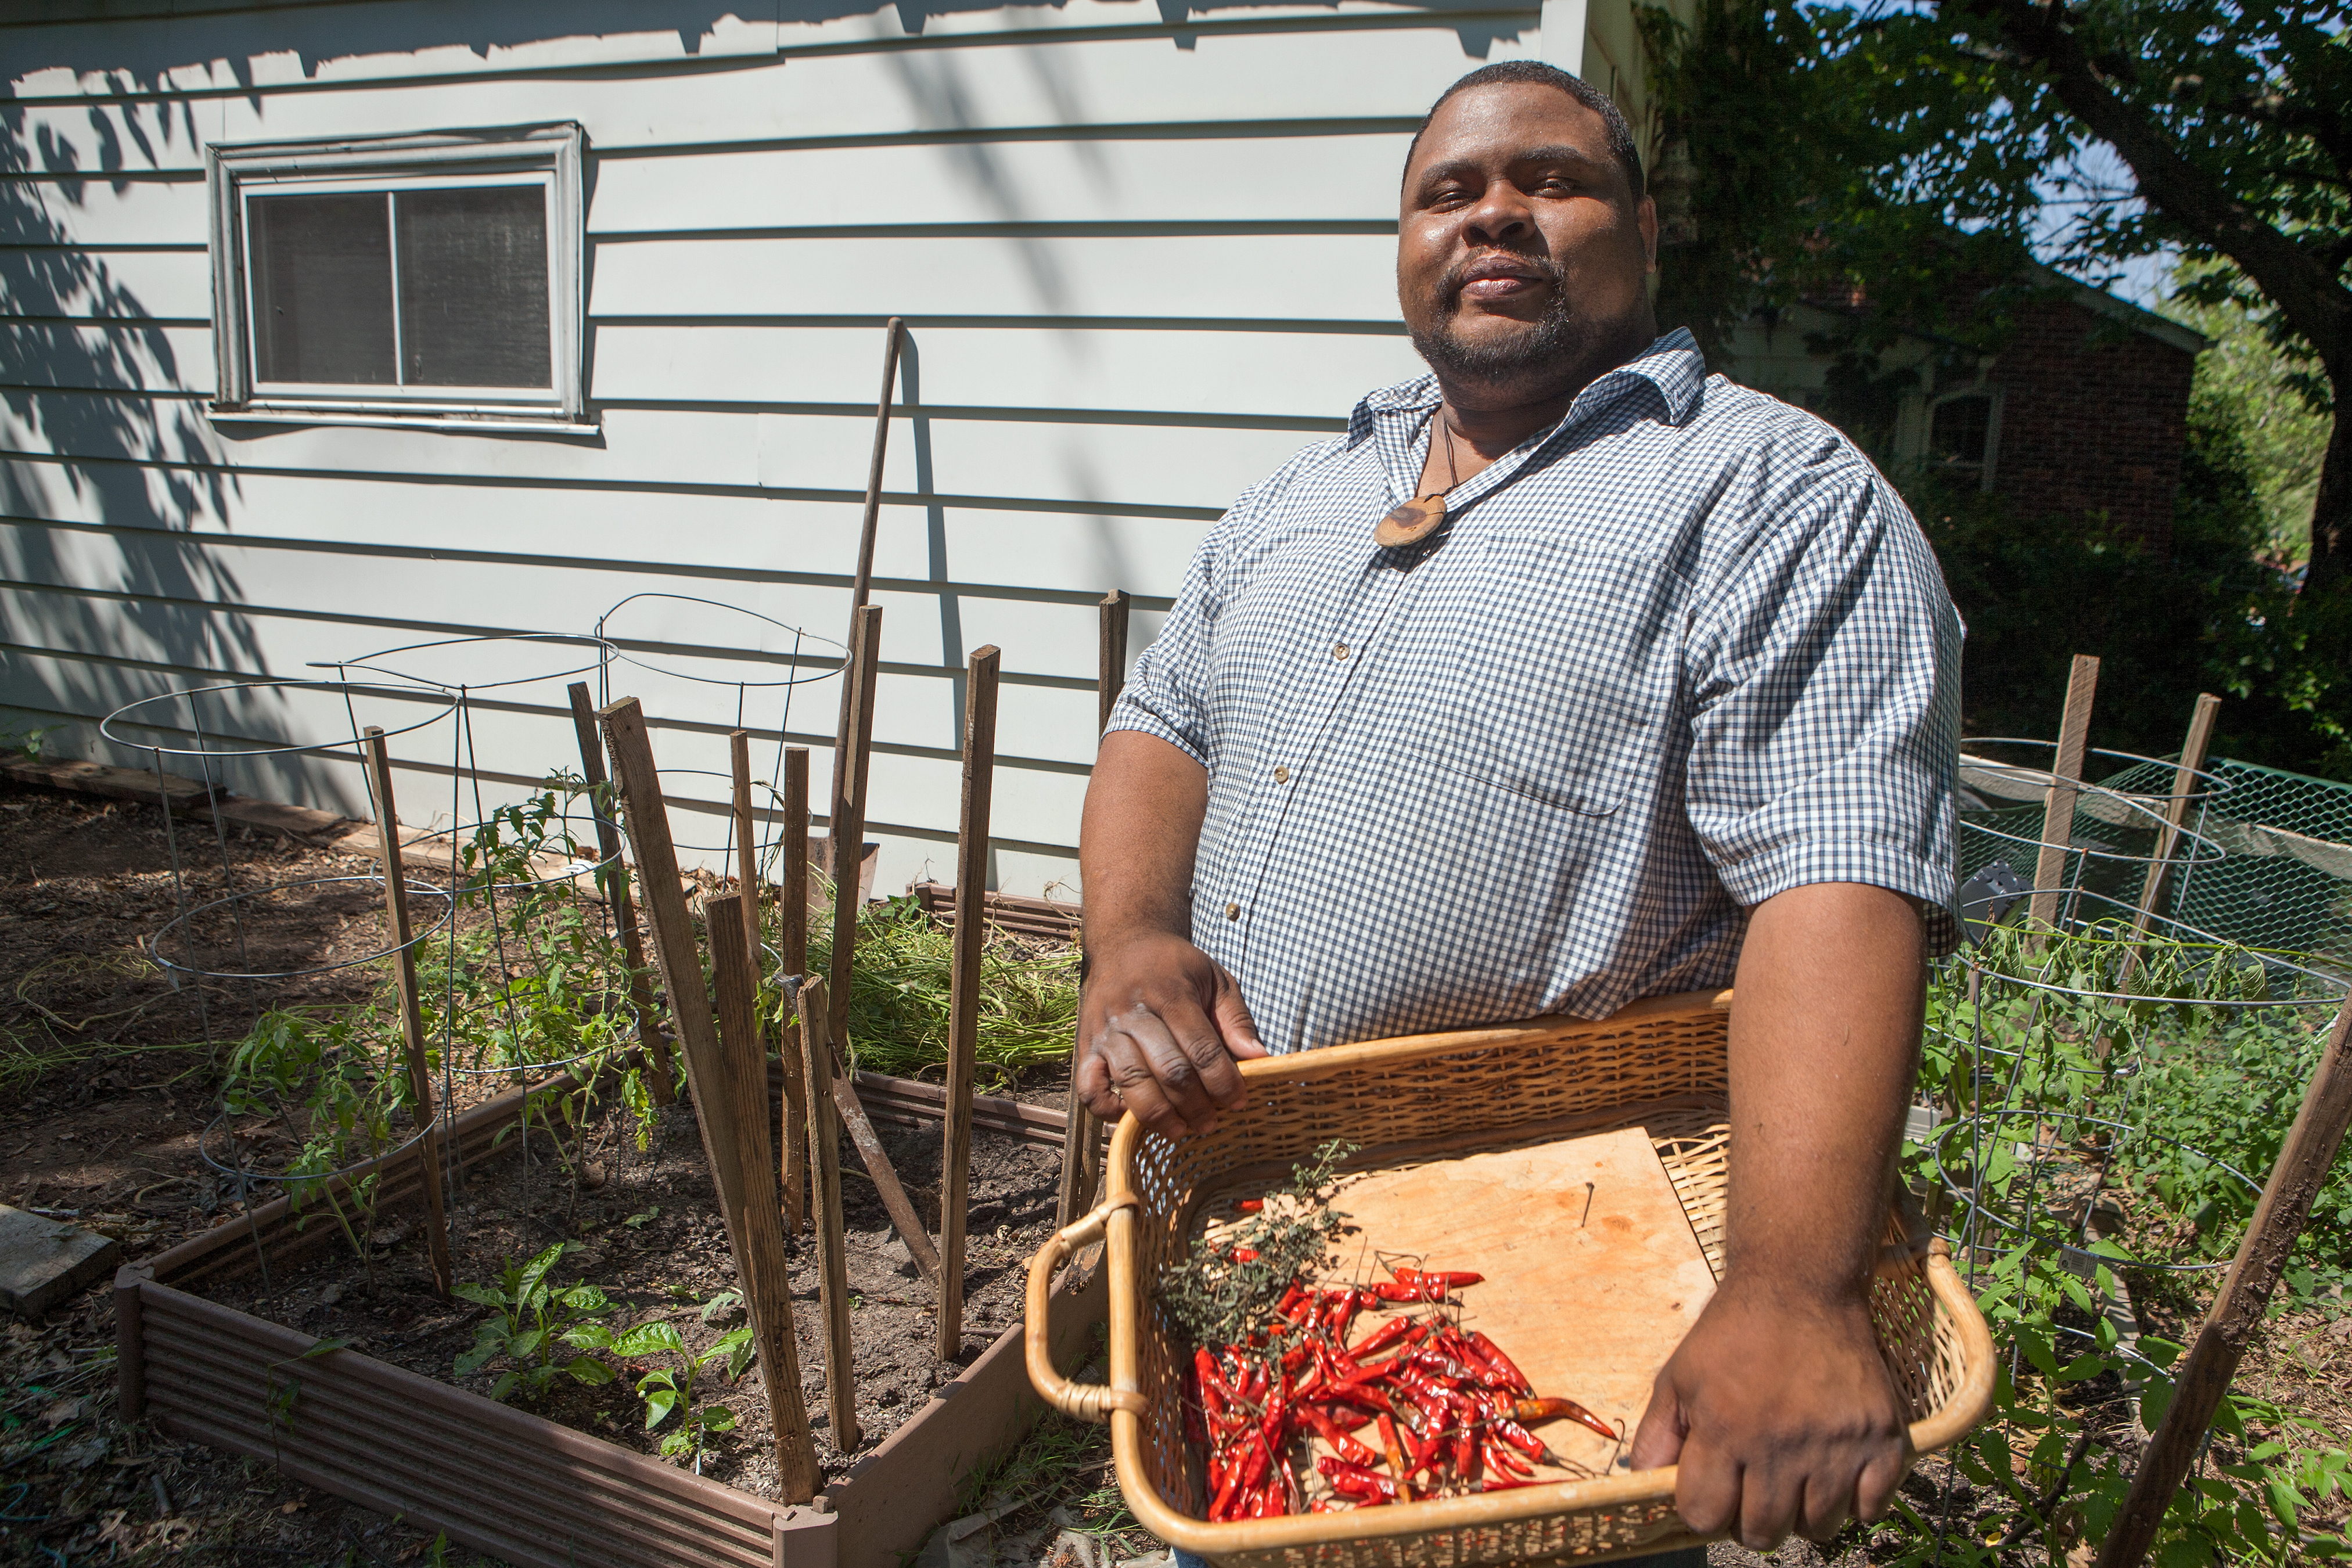 Michael Twitty is a culinary historian